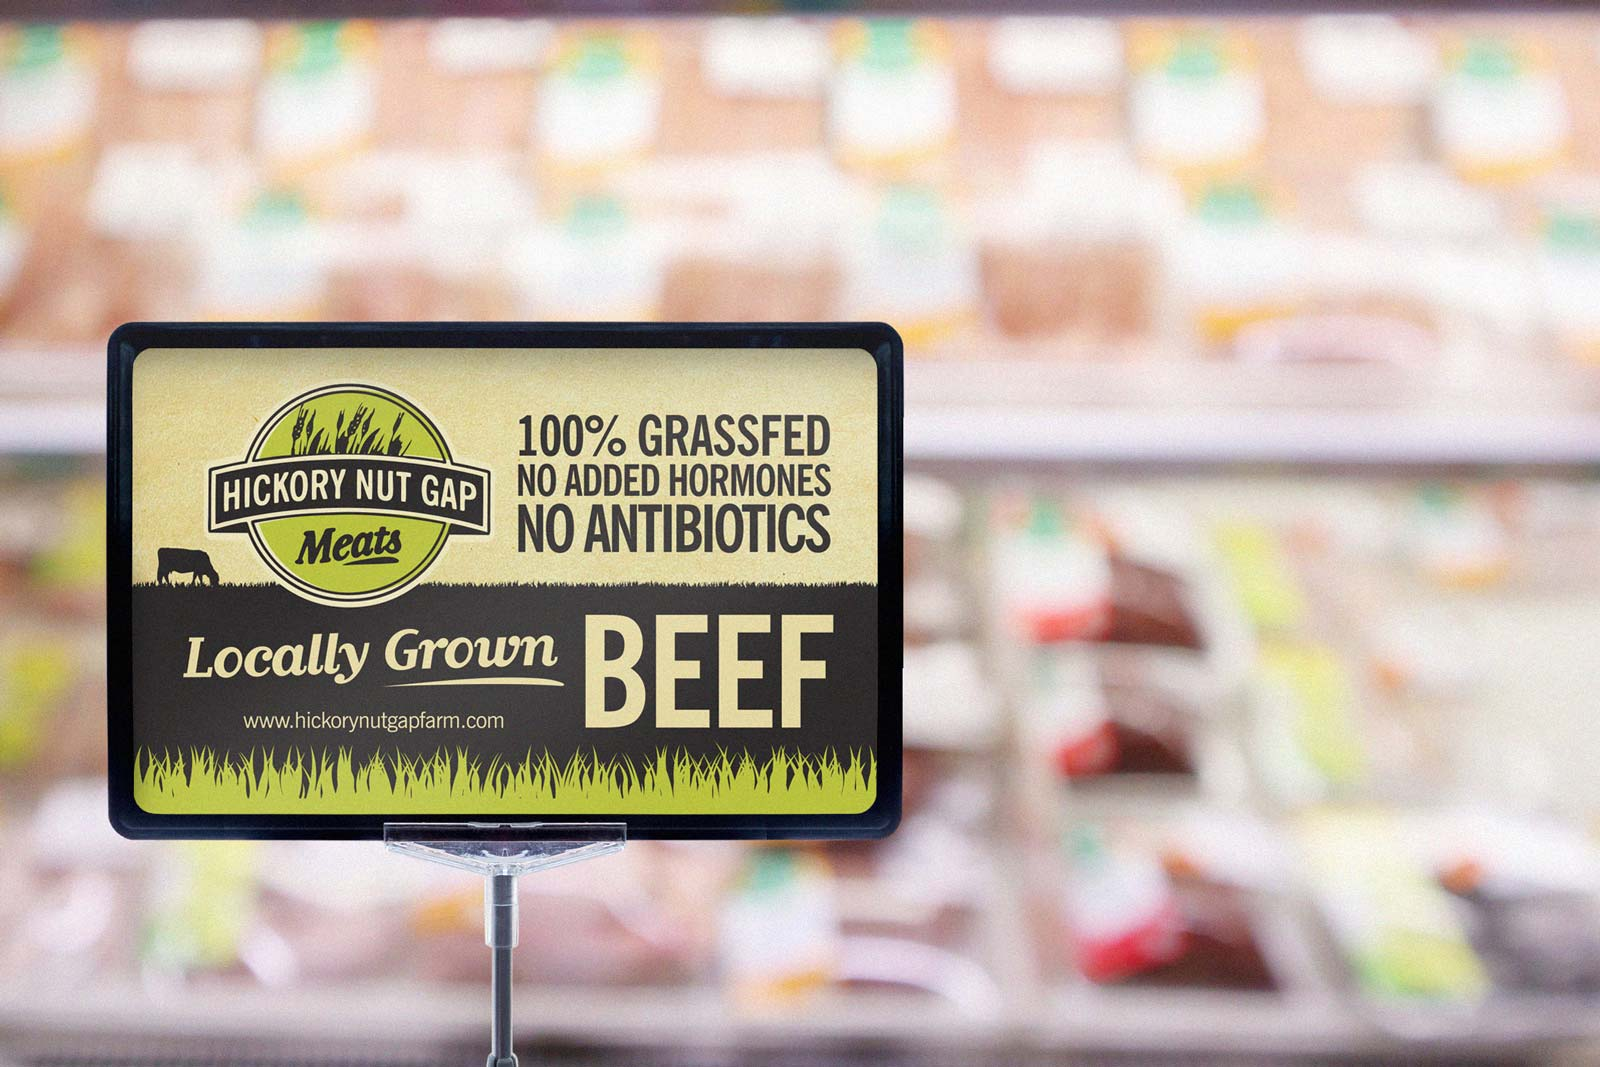 Hickory Nut Gap Meats  Beef placard sign in grocery store